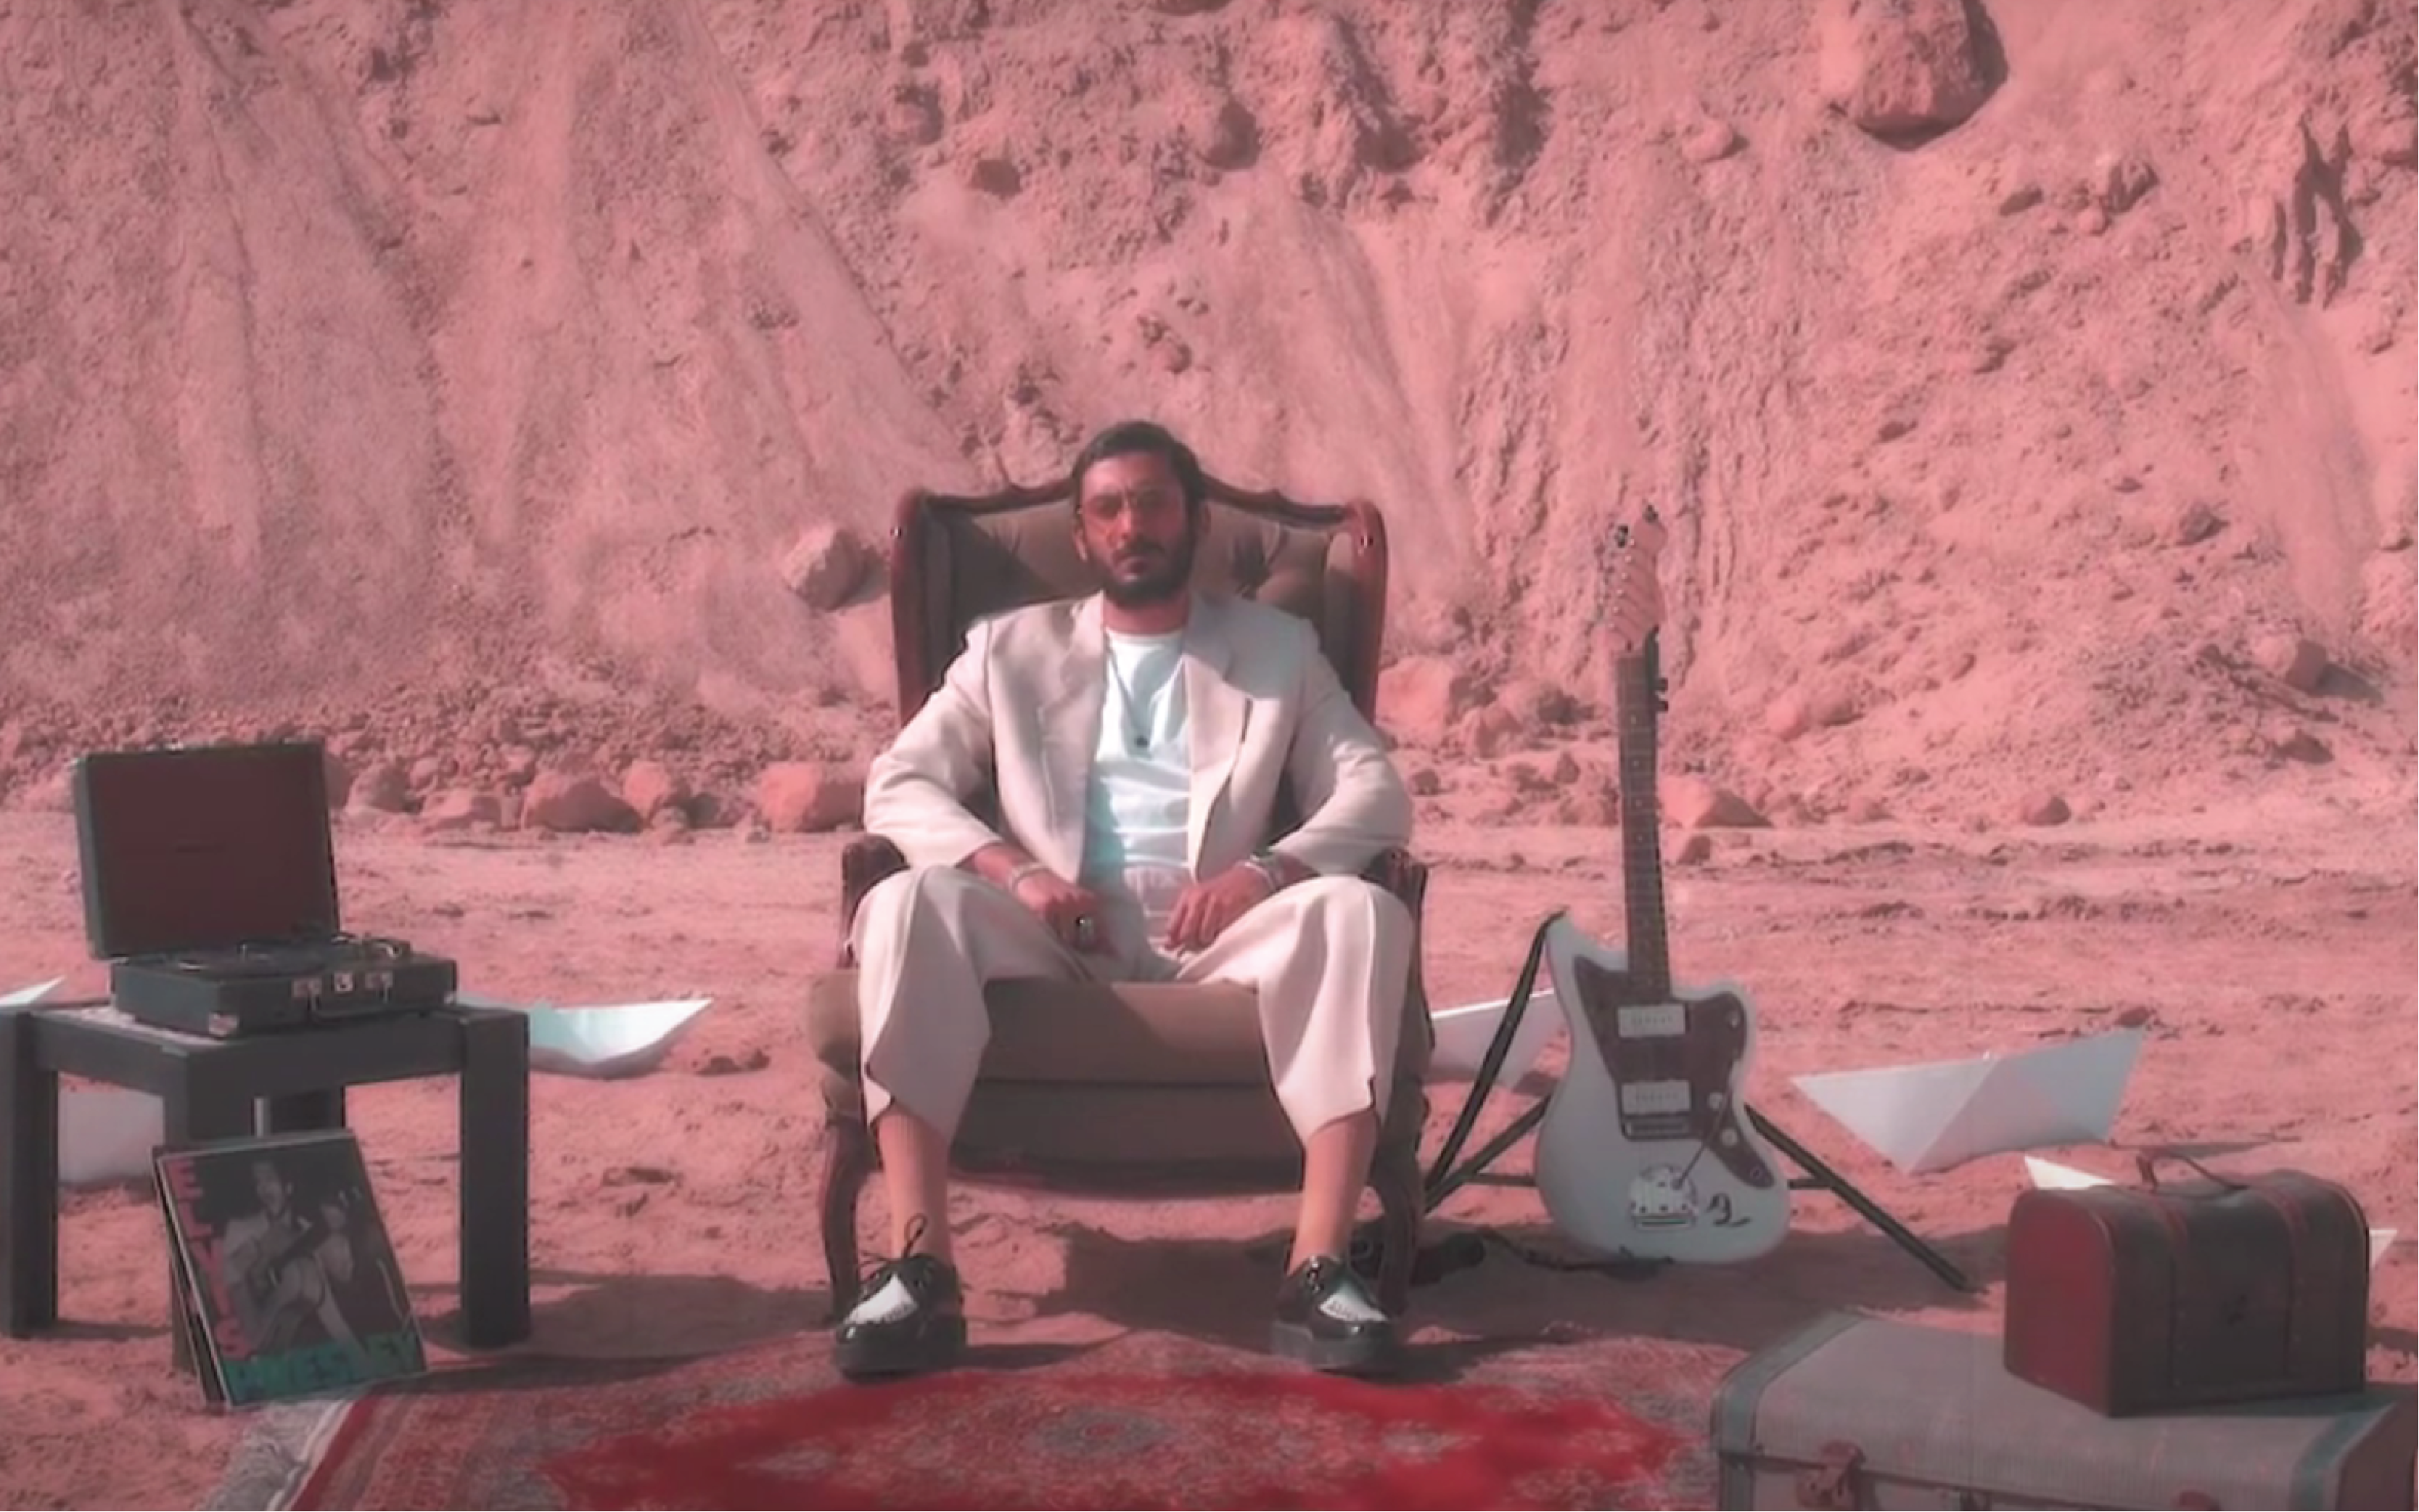 Egypt's Dirty Backseat Debuts New Music Video 'River' Ahead of Upcoming EP